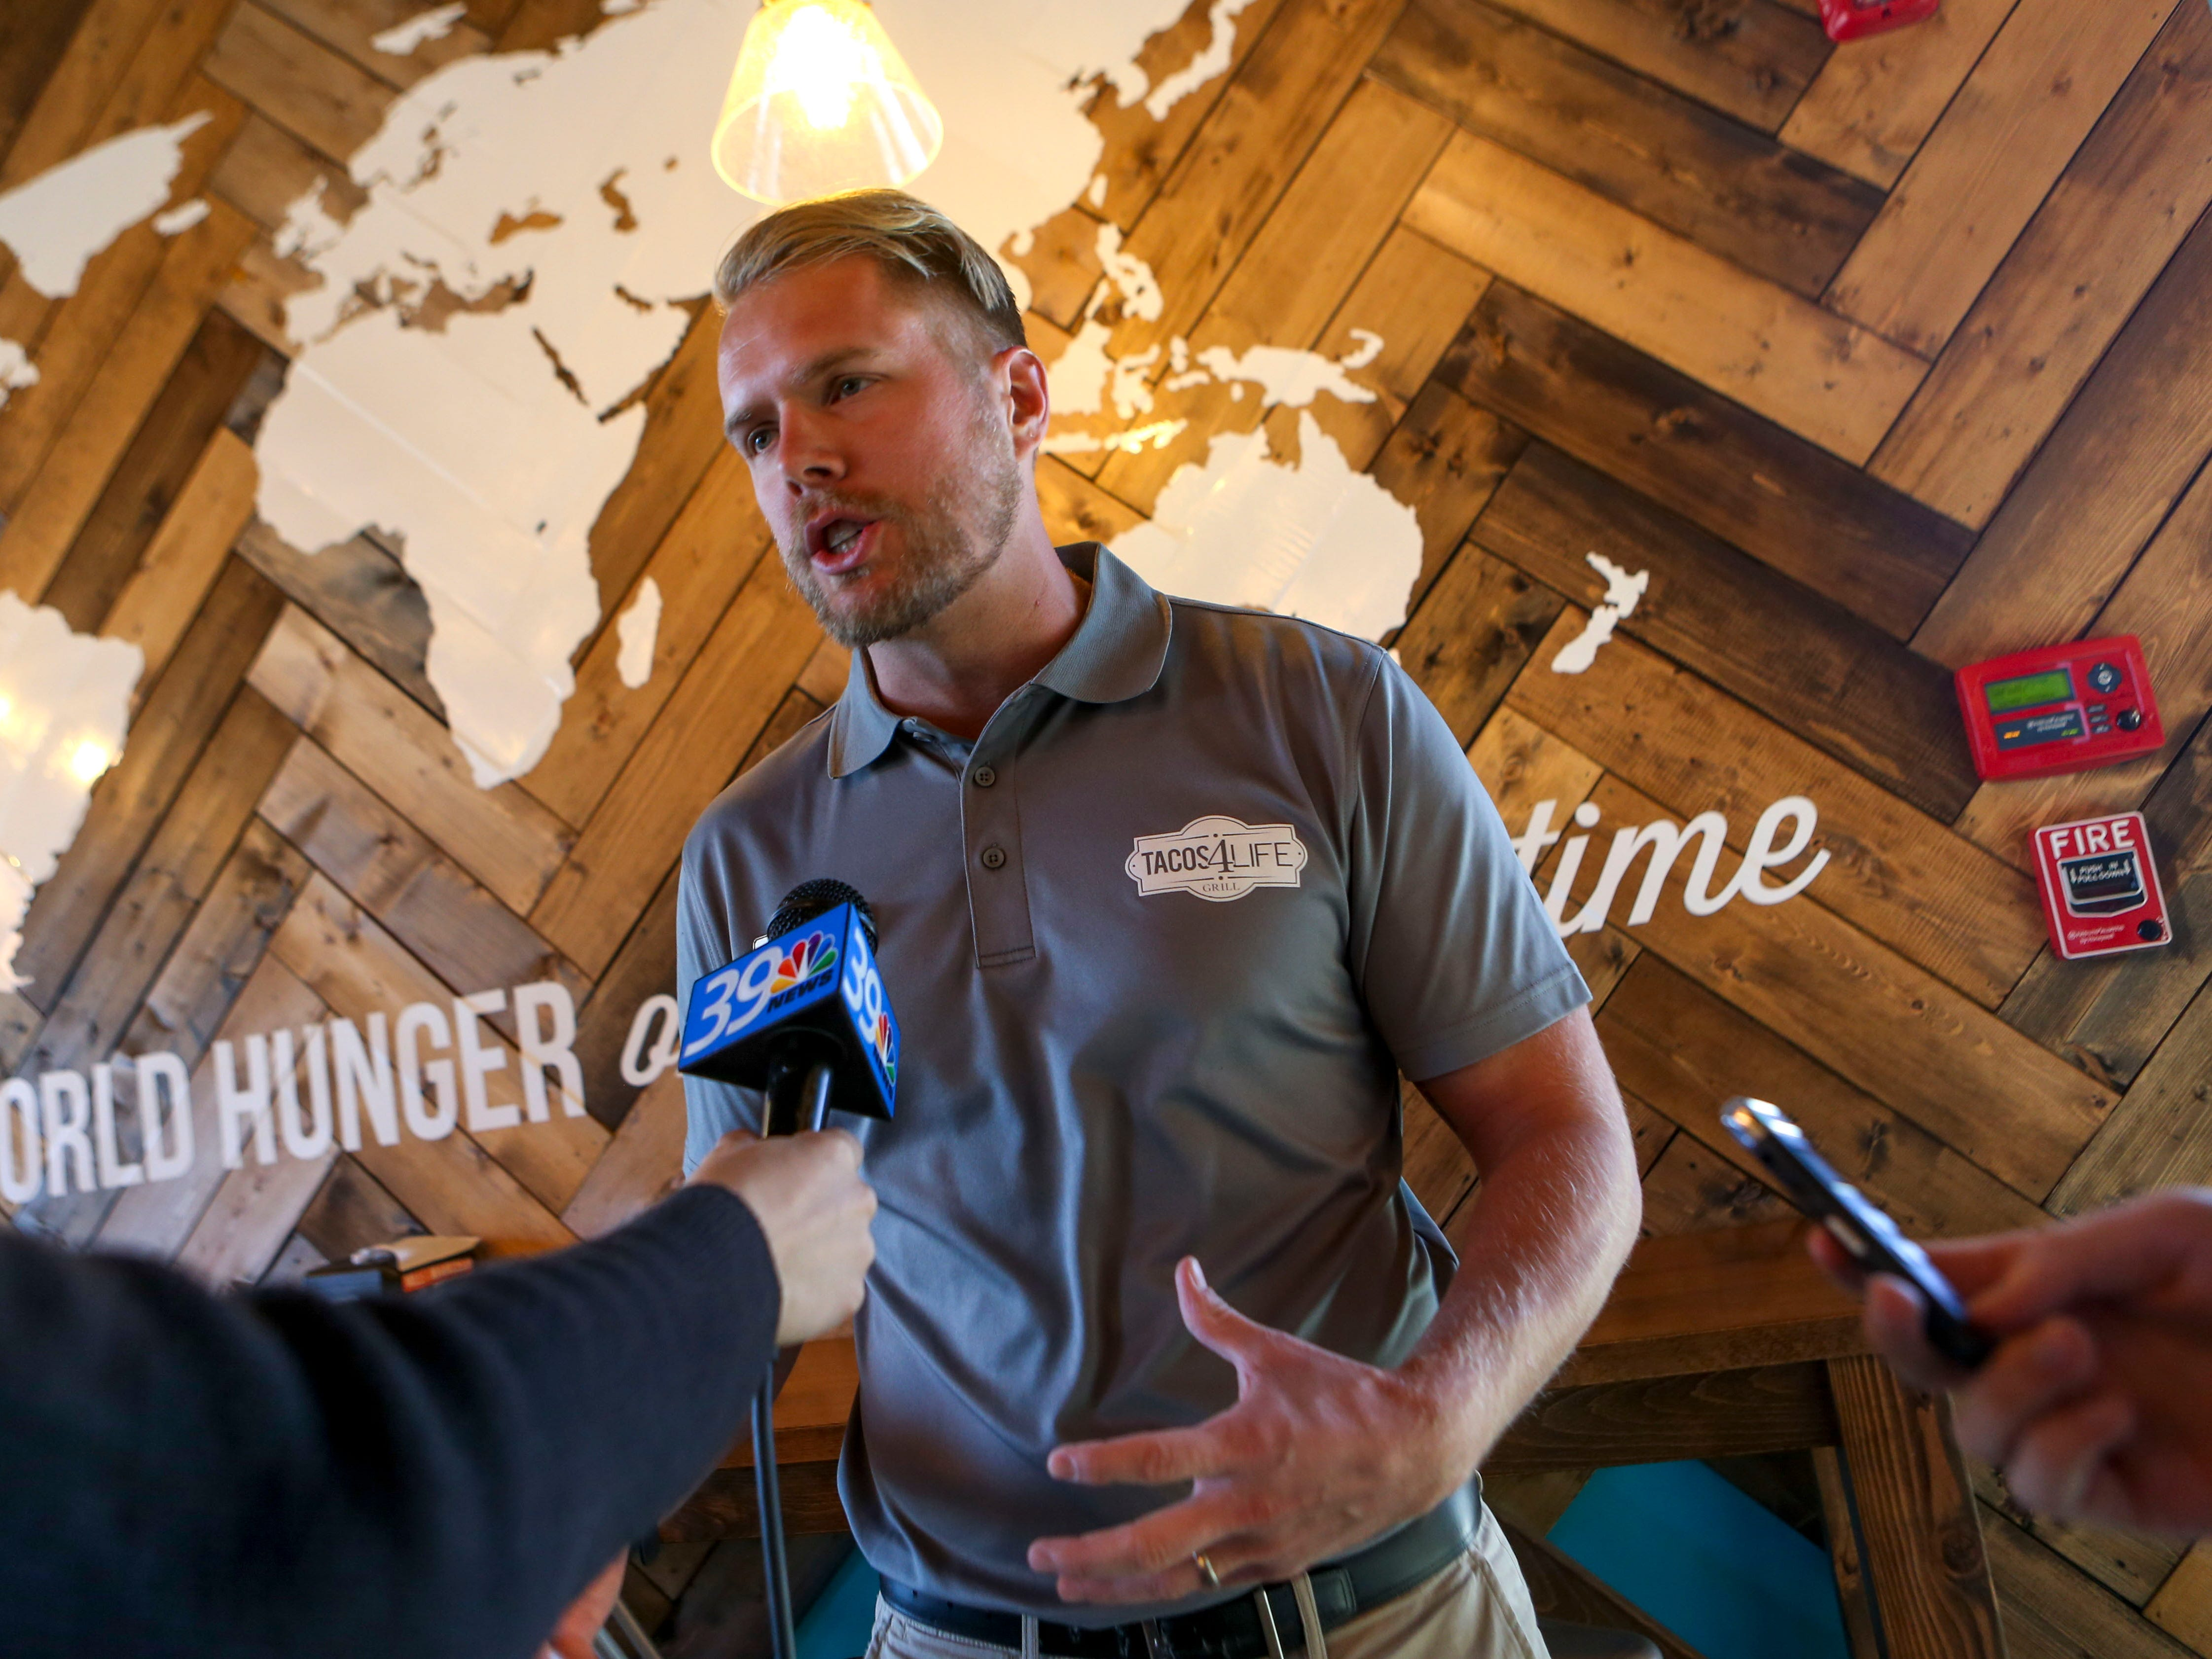 Austin Samuelson founder of Tacos 4 Life, speaks to reporters during the soft opening at Tacos 4 Life, a new restaurant in Jackson, Tenn., on Monday, Oct. 29, 2018.